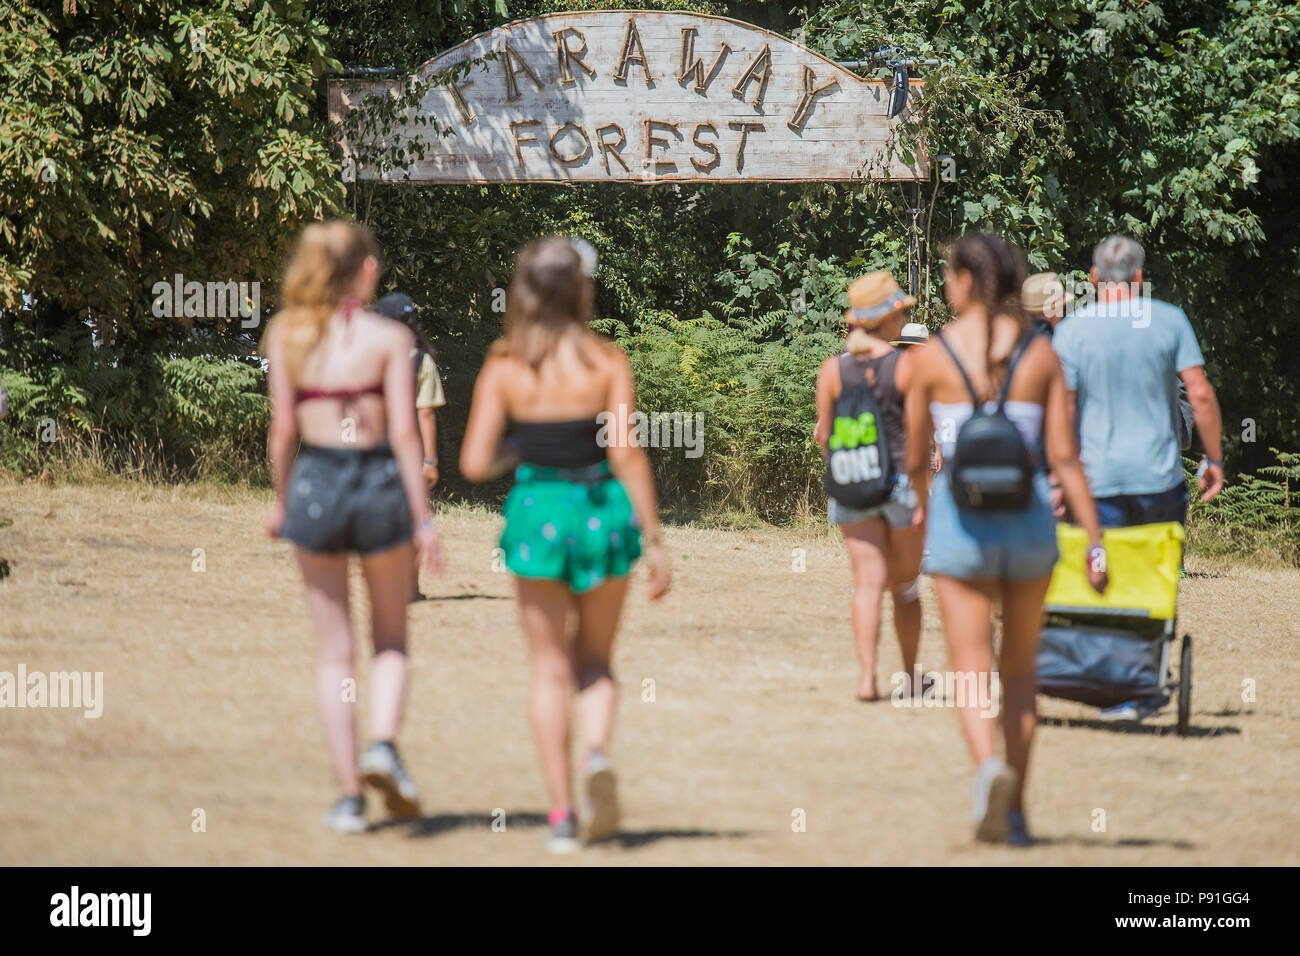 Suffolk, UK, 14 July 2018. People heading for the Faraway Forest - The 2018 Latitude Festival, Henham Park. Suffolk 14 July 2018 Credit: Guy Bell/Alamy Live News - Stock Image